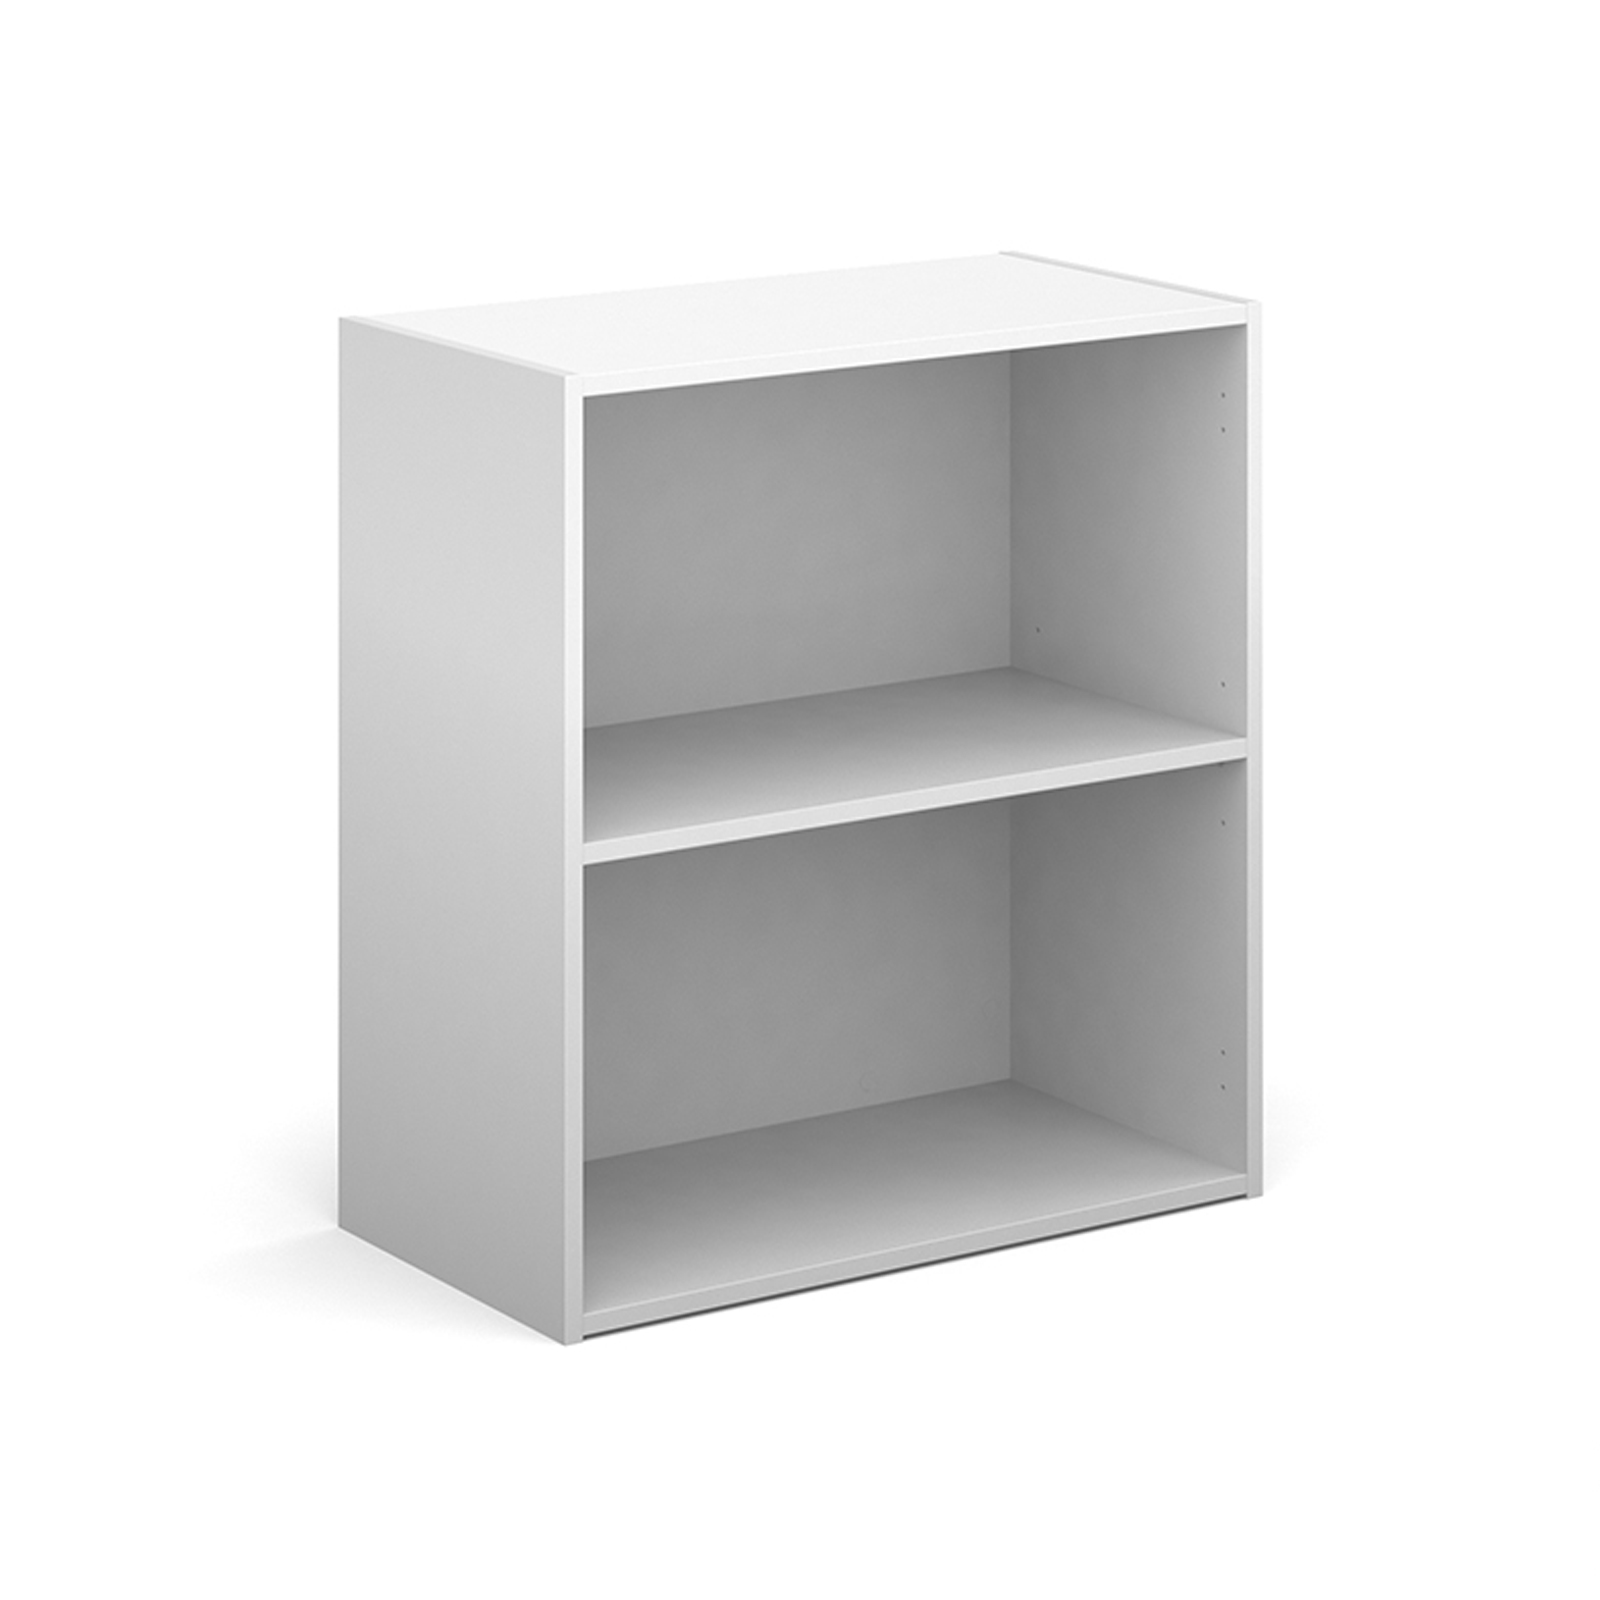 Up To 1200mm High Contract bookcase 830mm high with 1 shelf - white